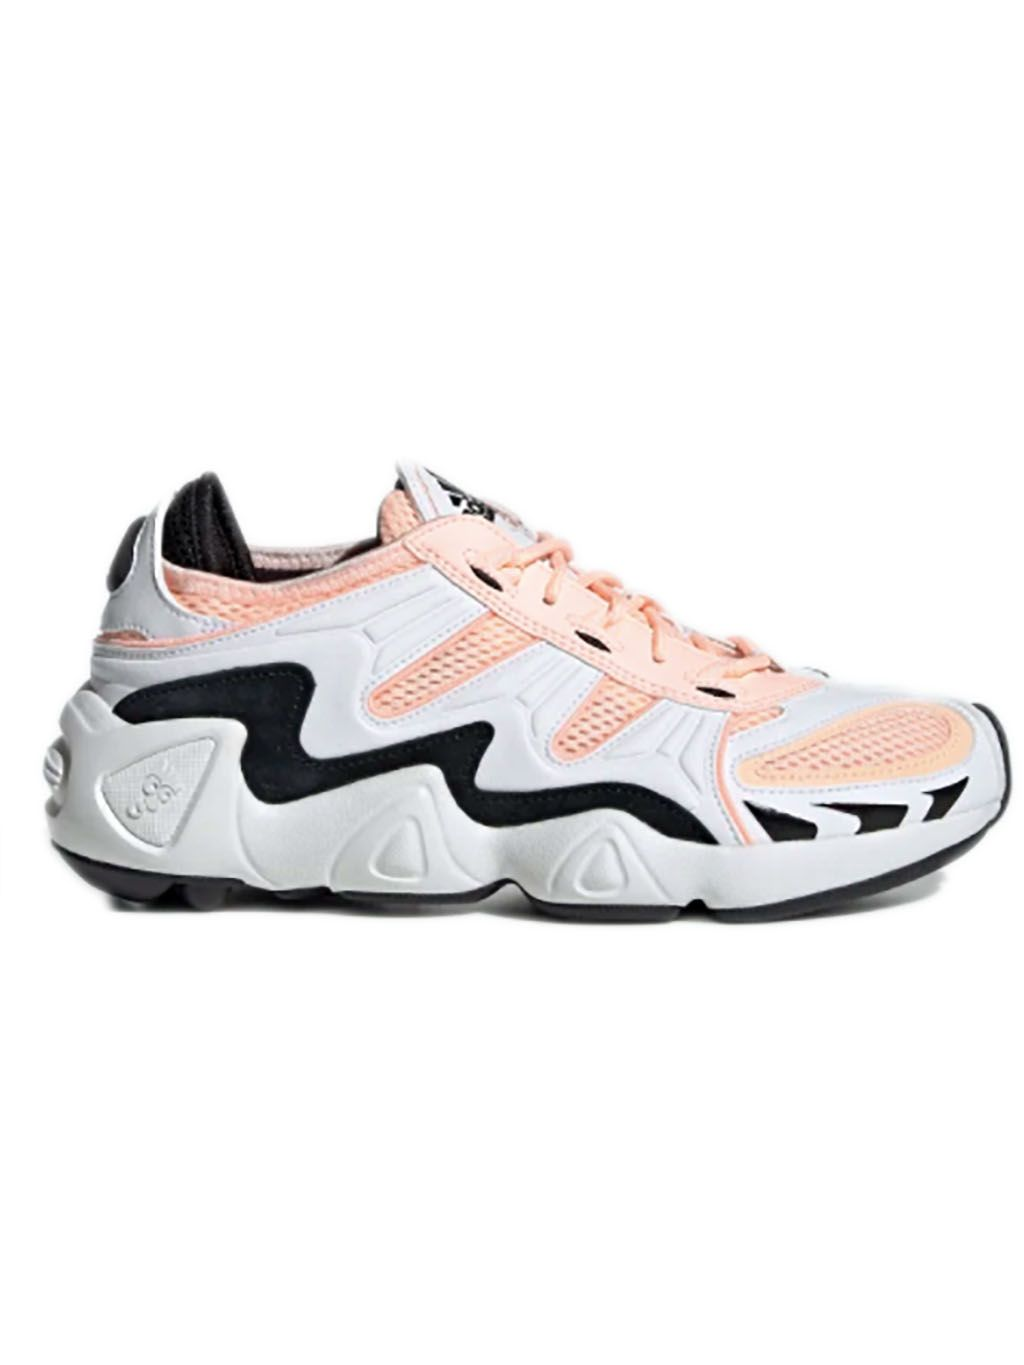 White & Orange FYW S 97 Sneakers